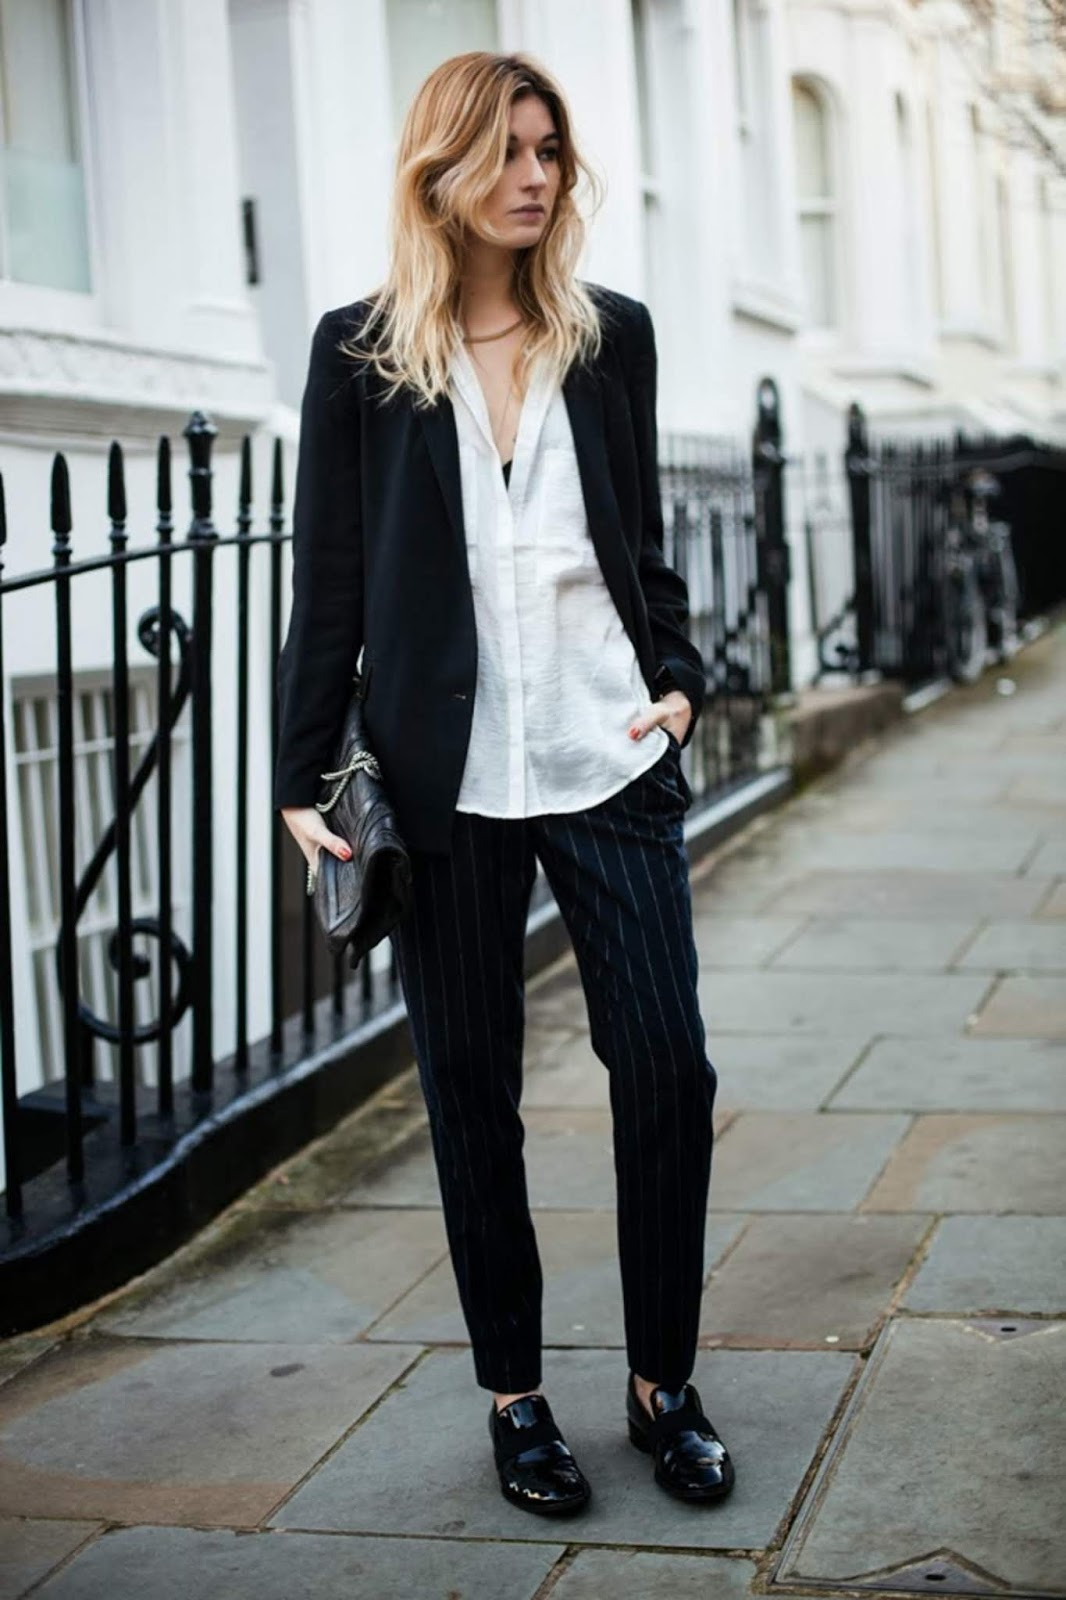 Pinstripe Pants Add an Extra Chic Touch to Your Outfit — Camille Charriere Street Style